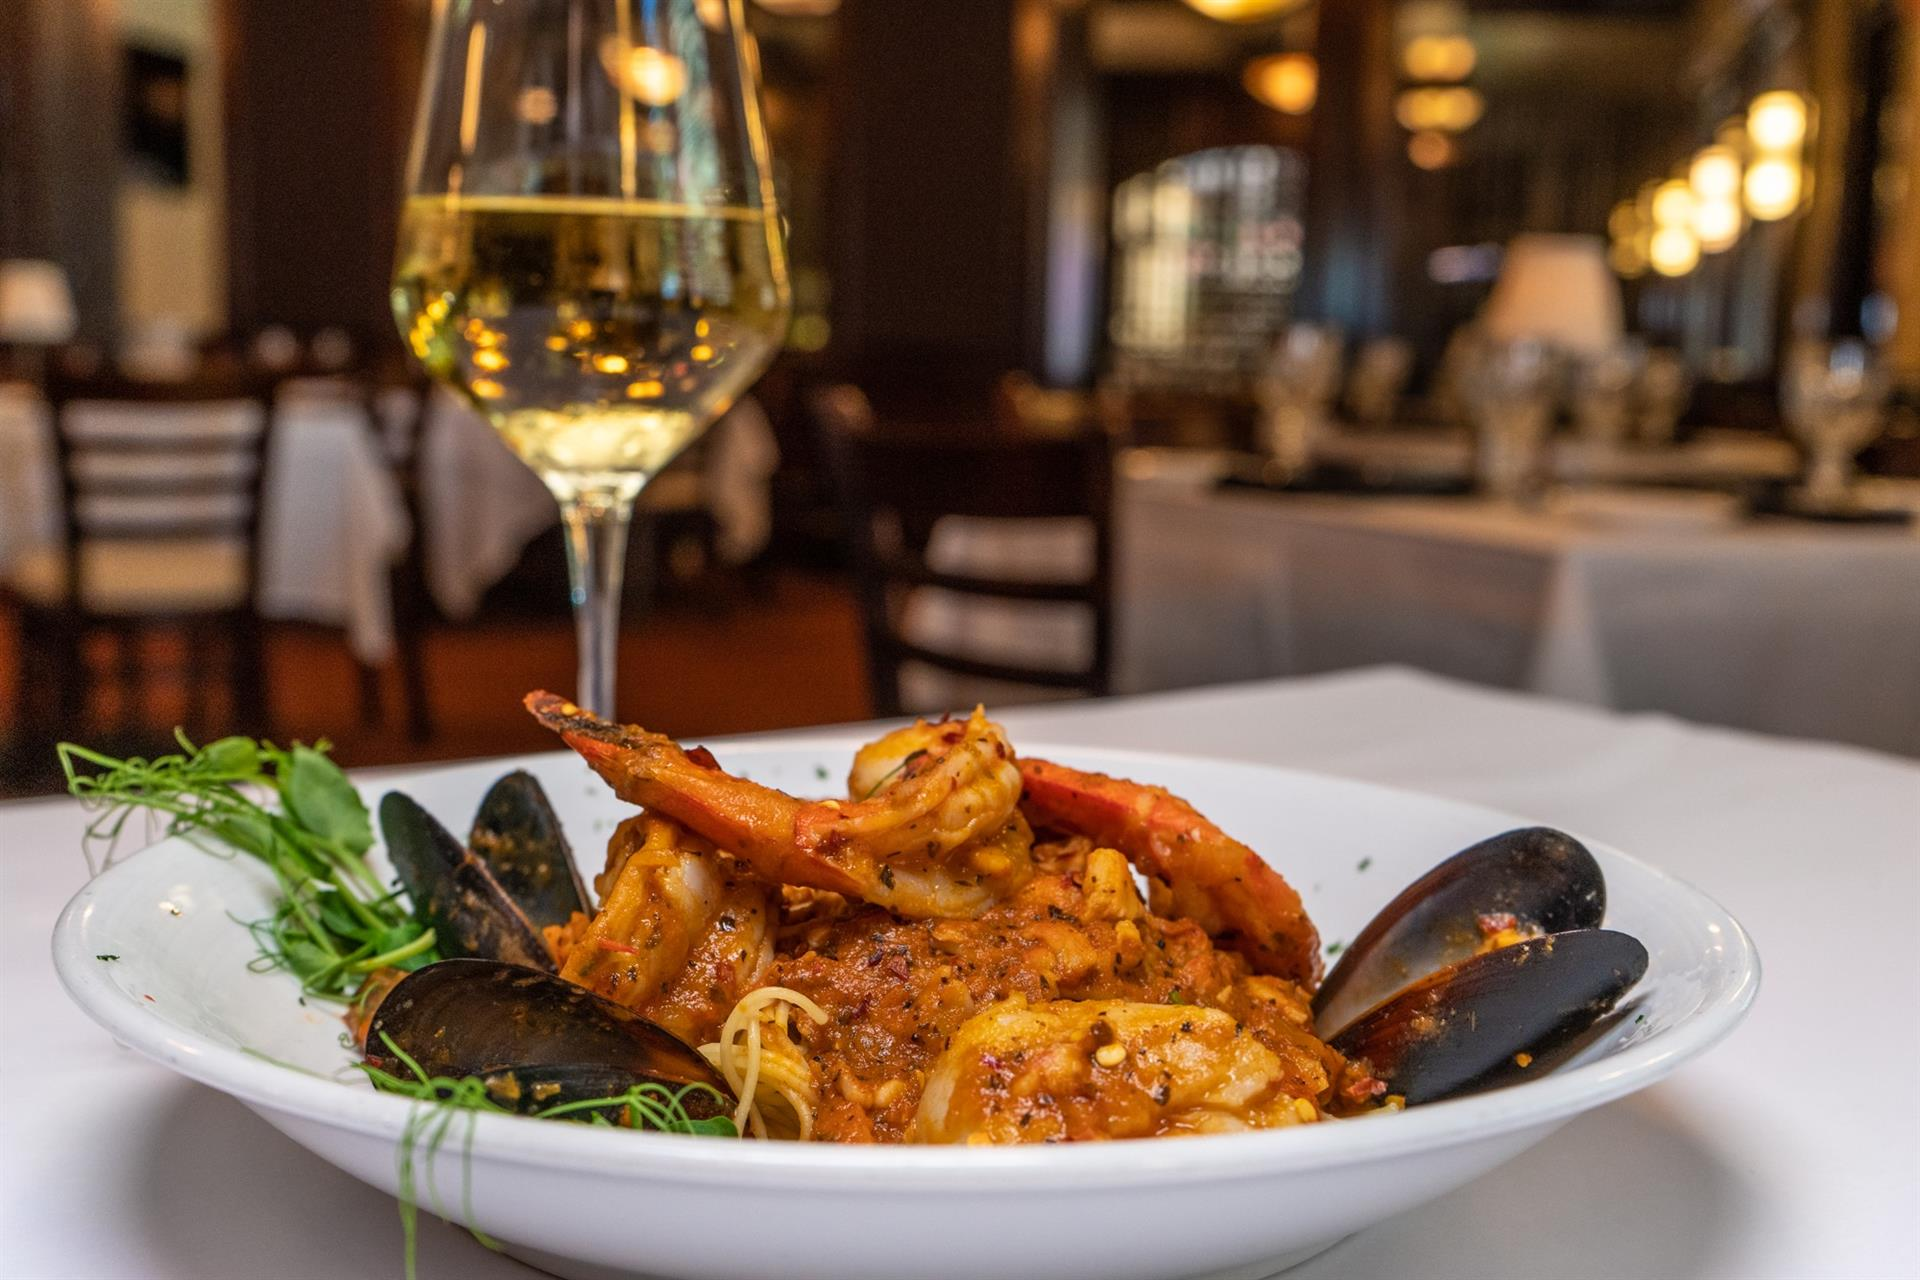 shrimp and mussels in a plate with a glass of white wine